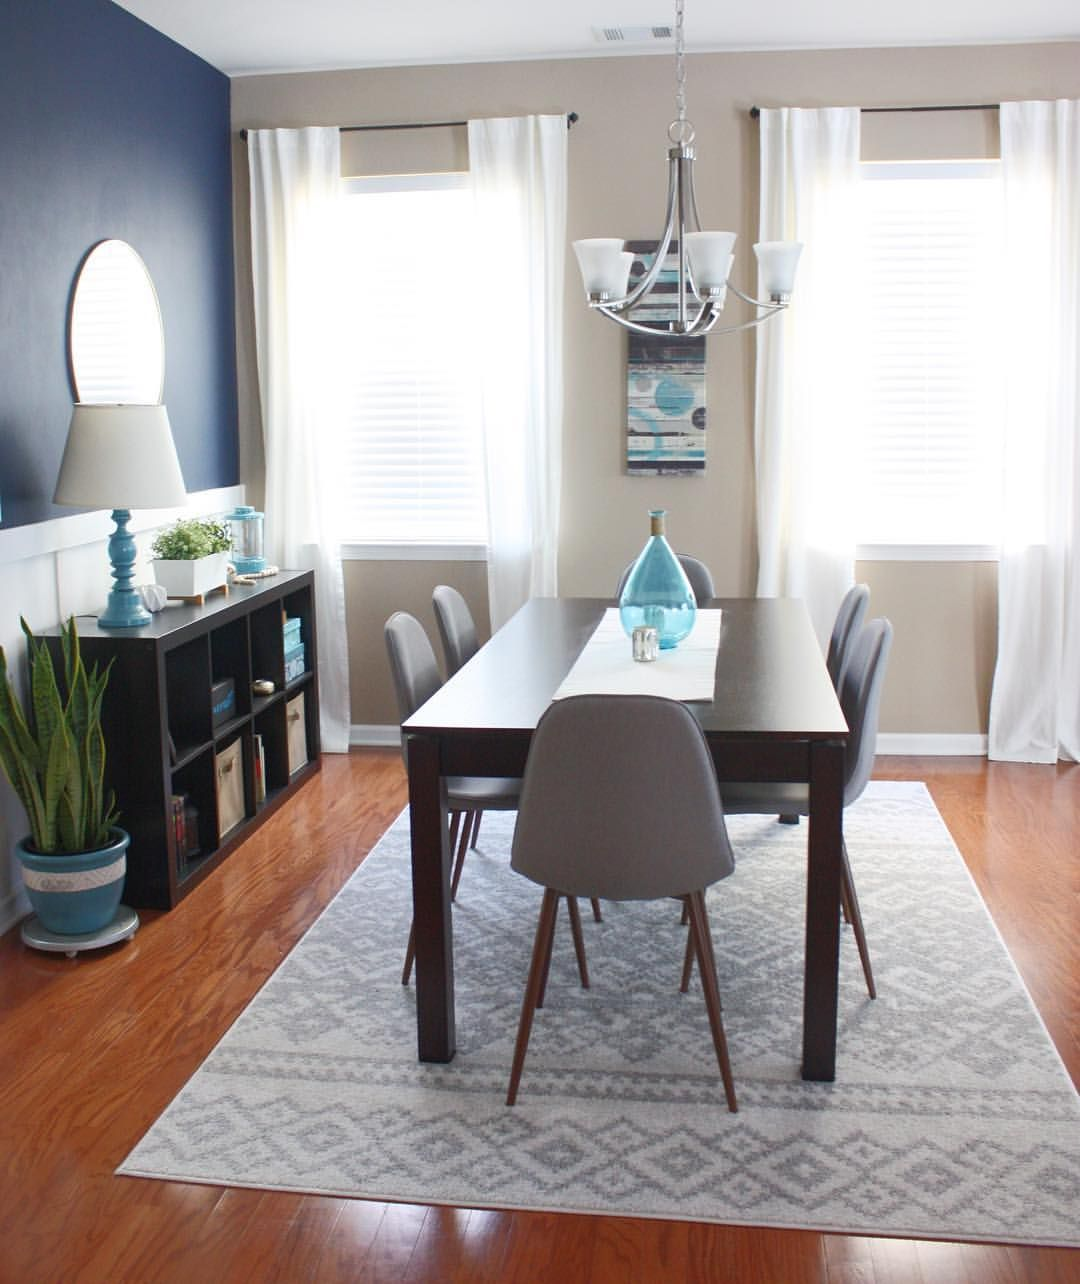 25 Blue Dining Room Designs Decorating Ideas: Mid Century Modern Dining Room With Dark Blue Accent Wall